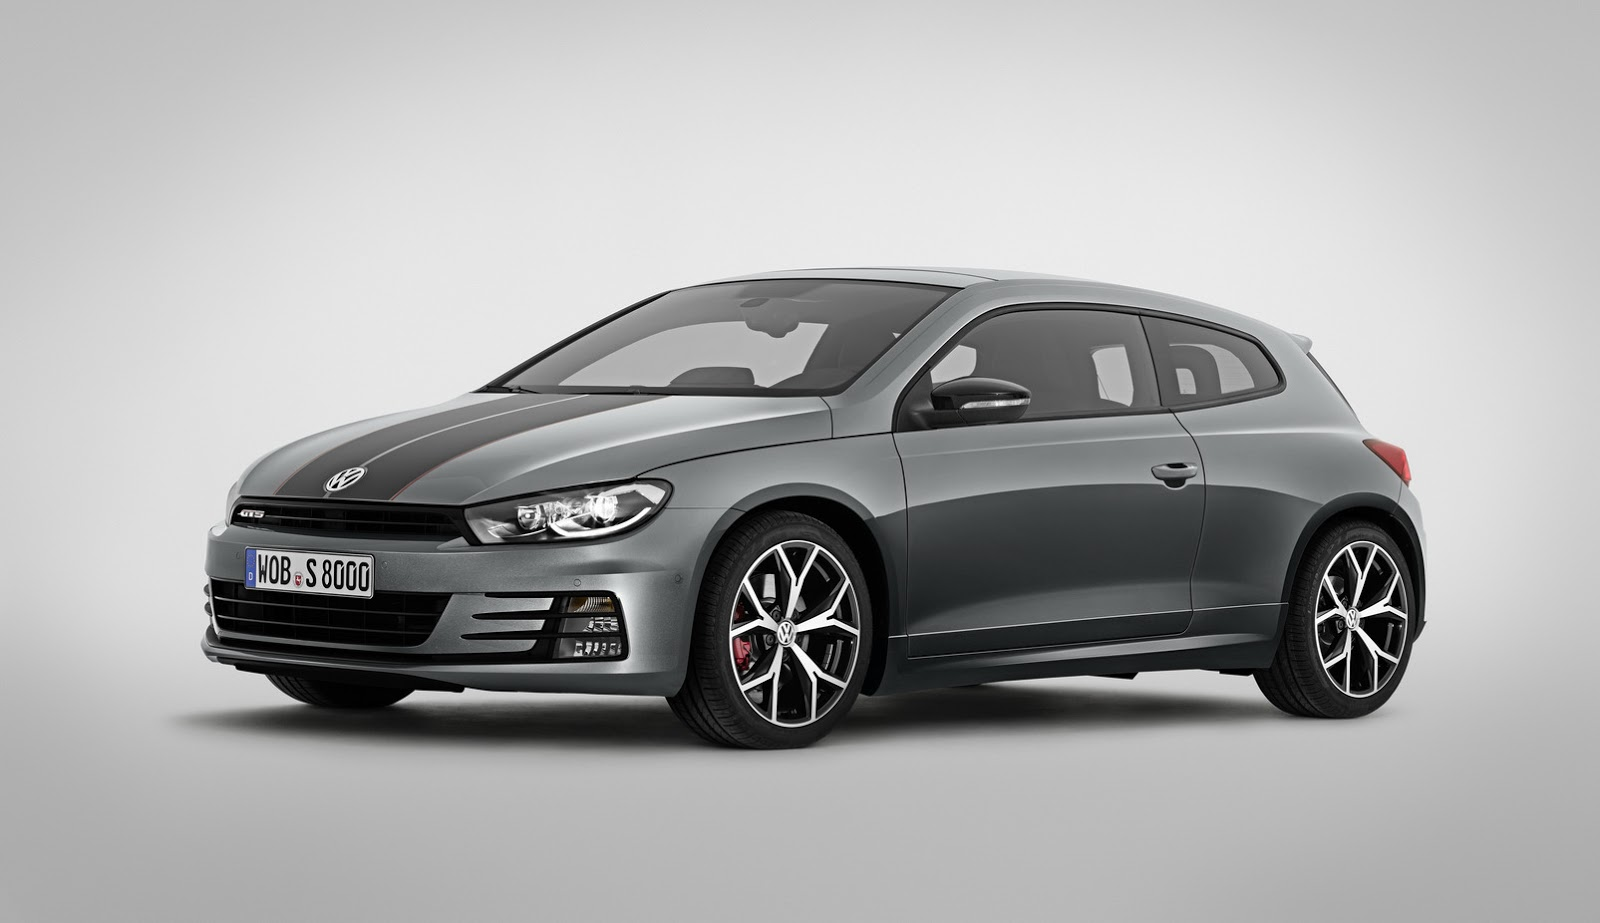 2015 vw scirocco gts is a 220 hp golf gti alternative autoevolution. Black Bedroom Furniture Sets. Home Design Ideas